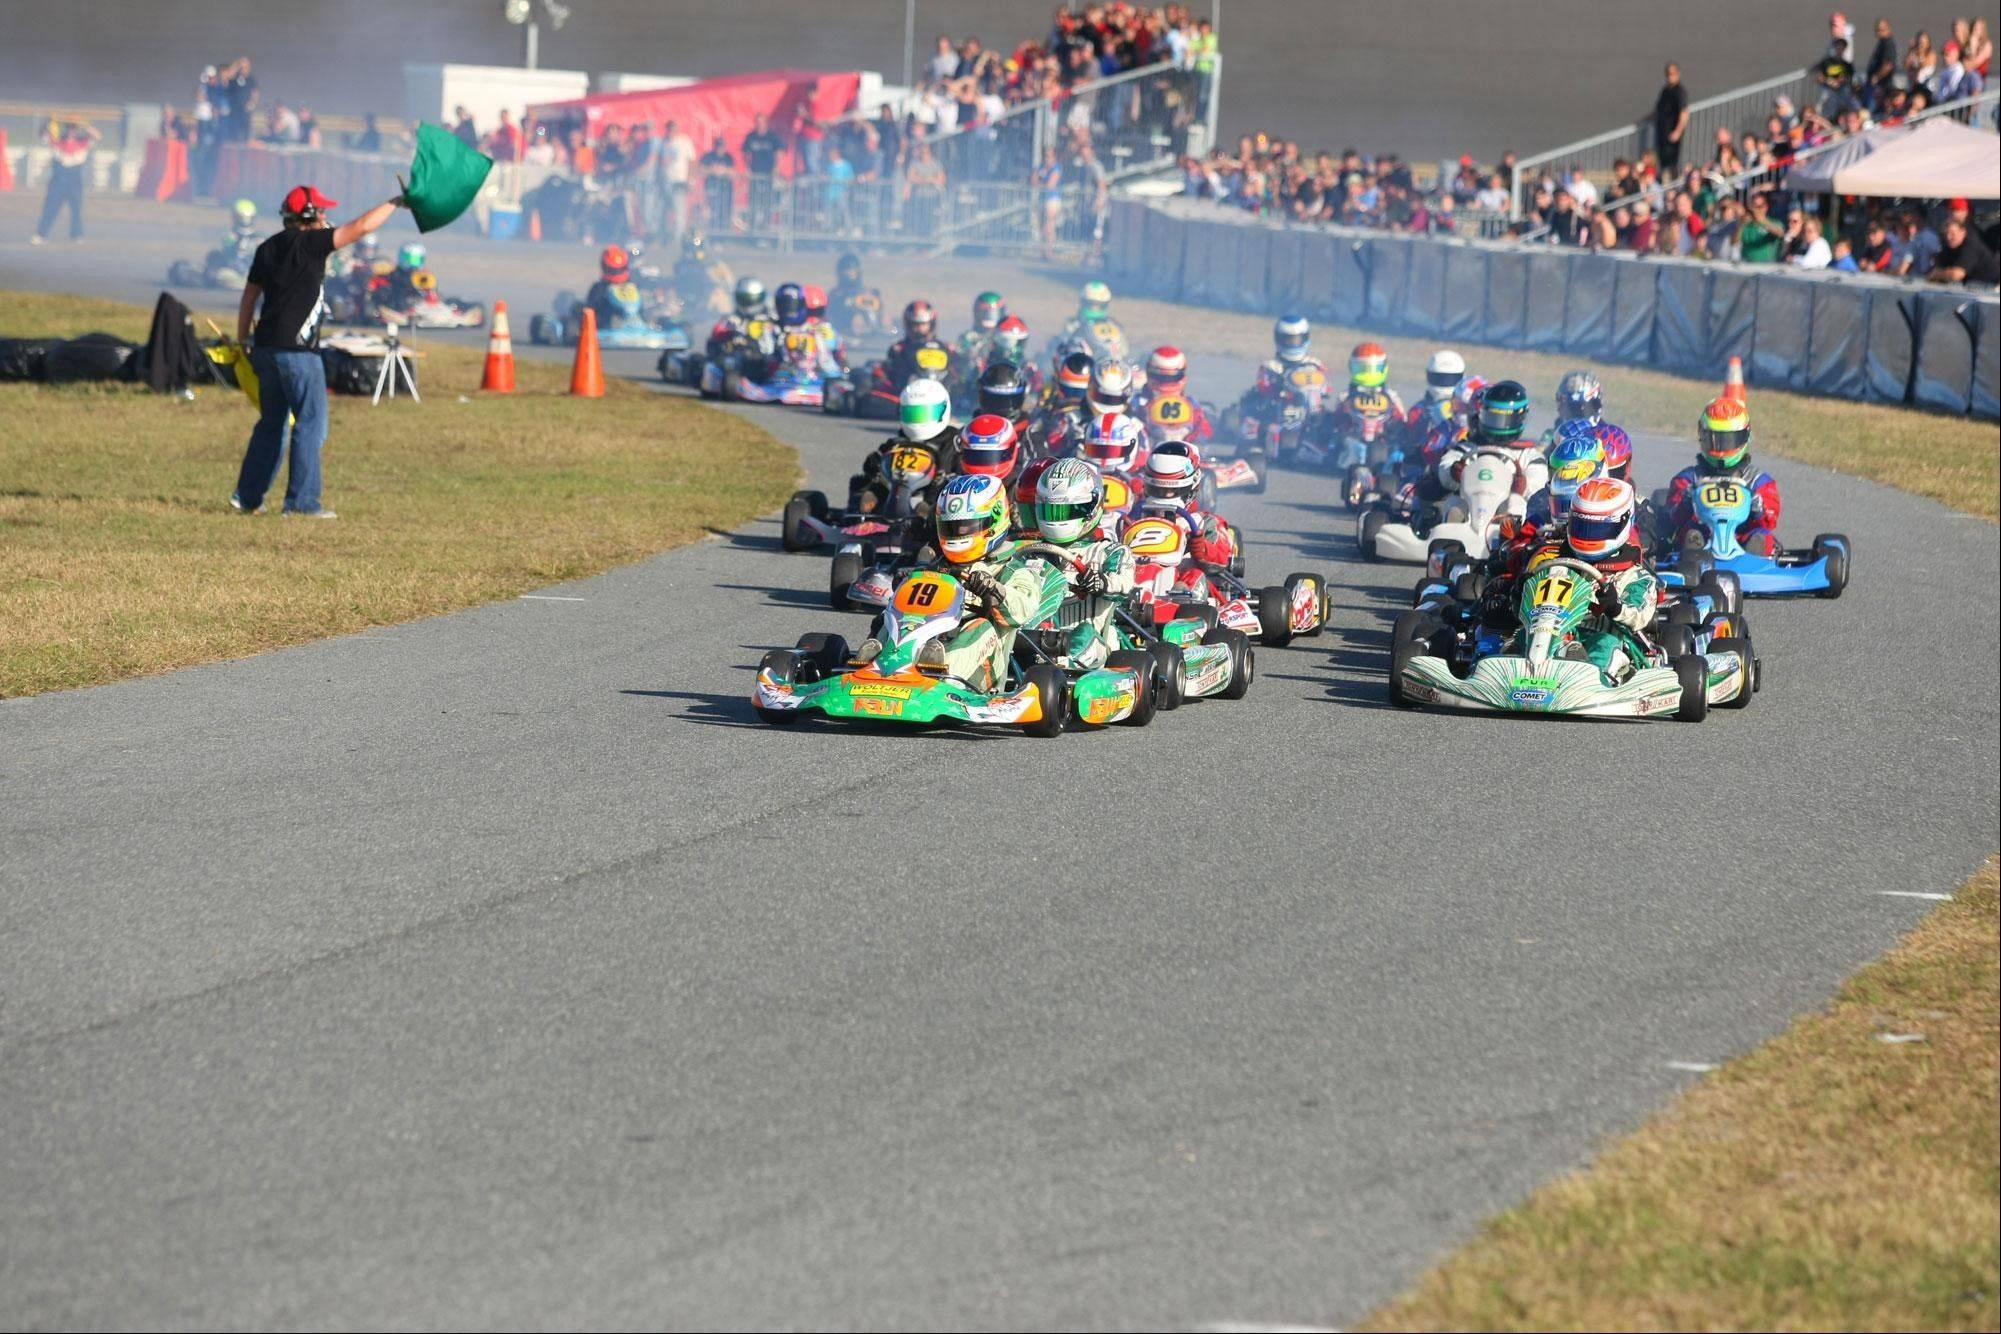 Kyle Kalish, a four-time national champion go-kart racer, leads the pack at a recent race. People familiar with the go-kart circuit consider Kyle one of the nation's elite young drivers.